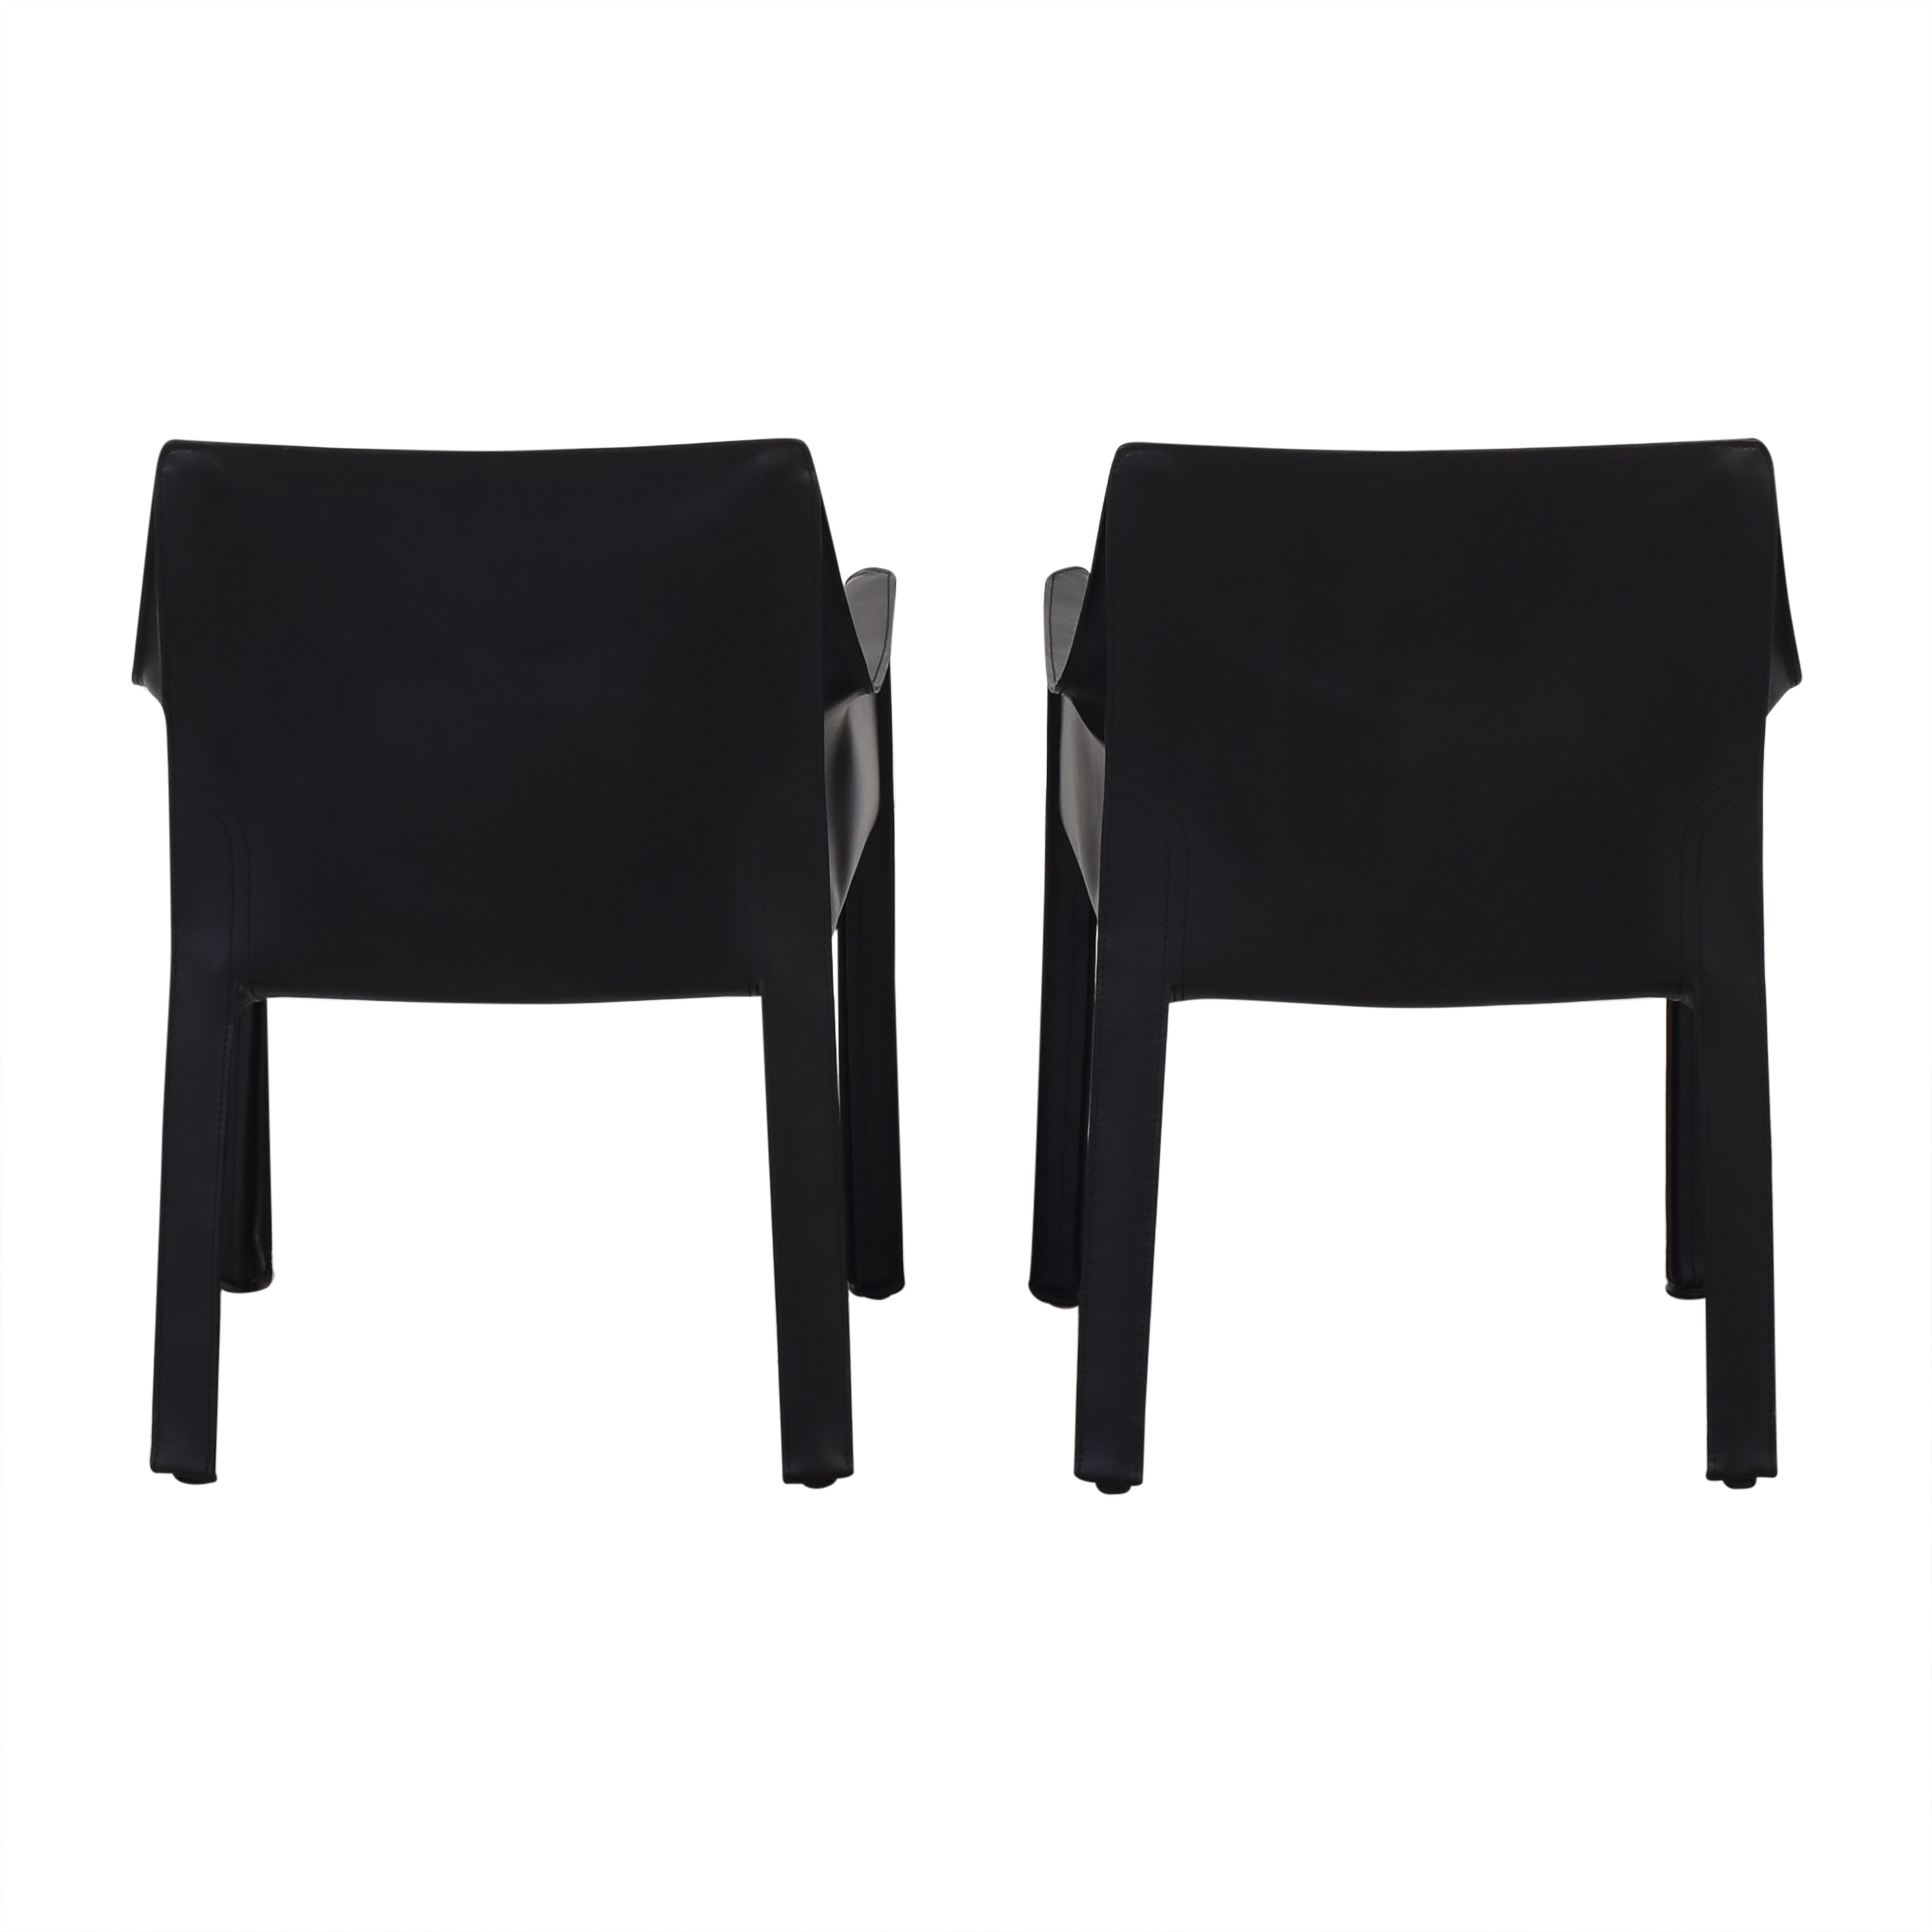 shop Cassina Cassina Mario Bellini Leather Cab Chairs online